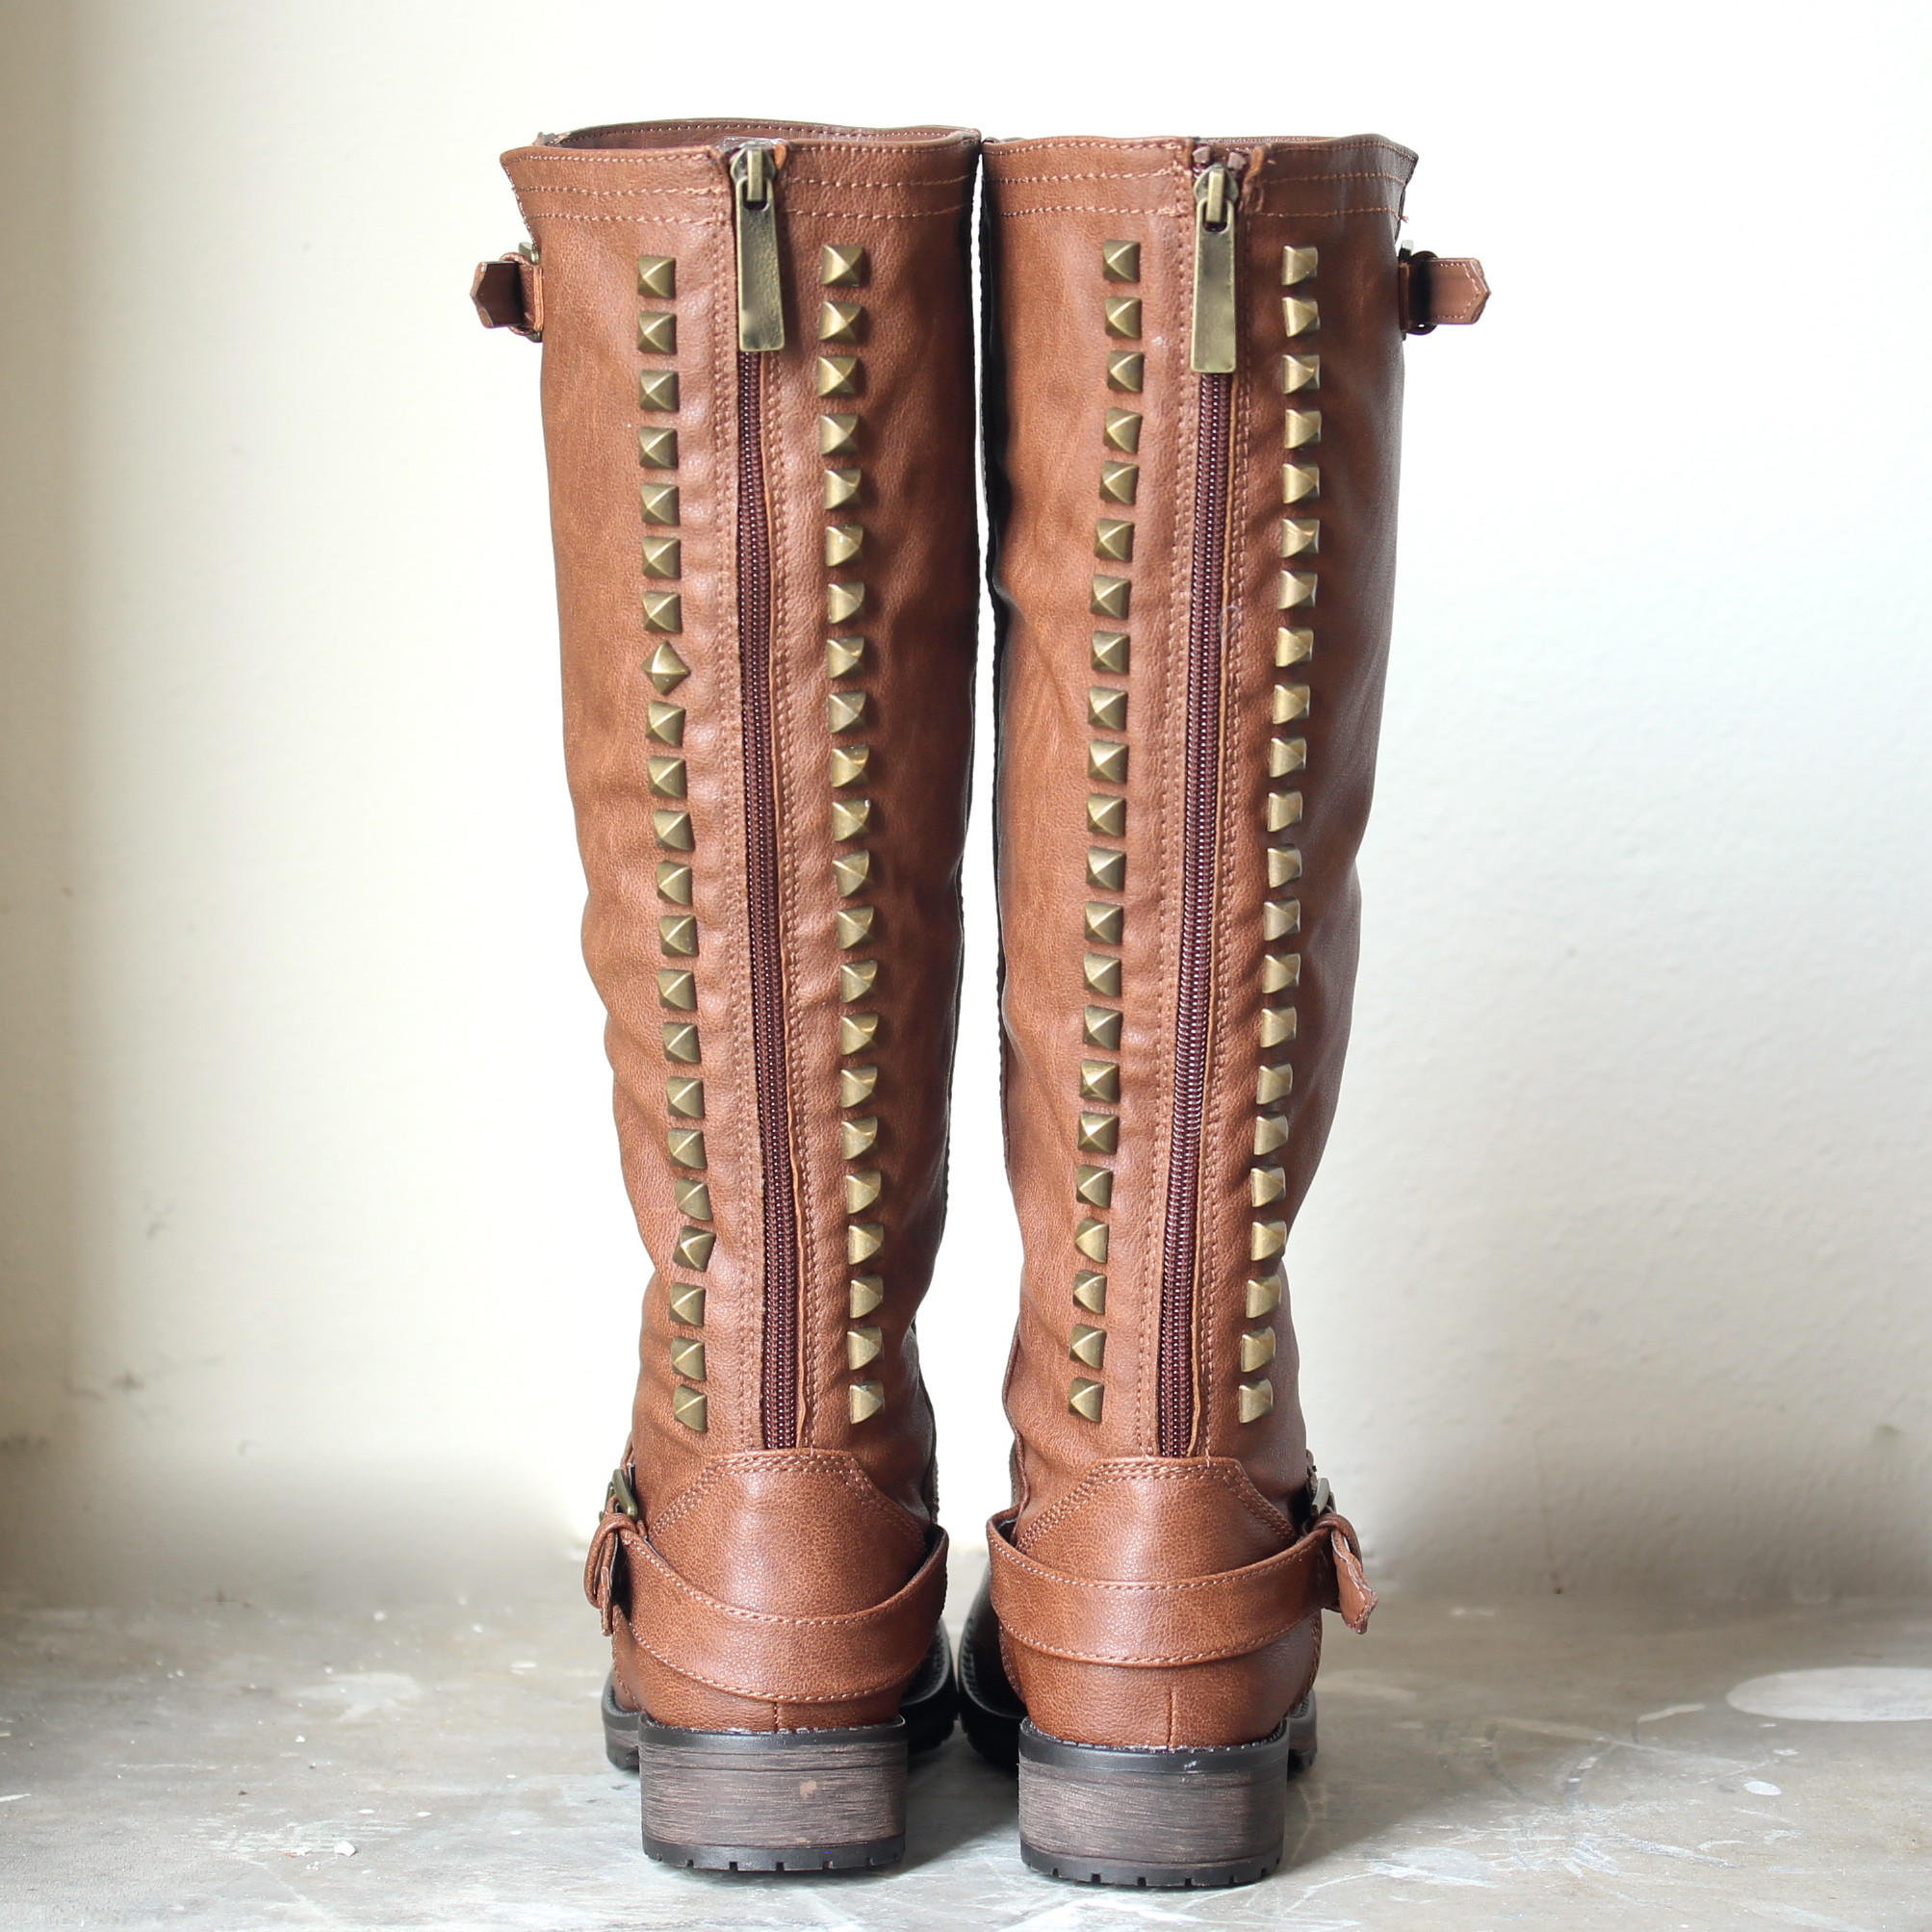 paige tall women studded riding boots - from shophearts | LOW CUT